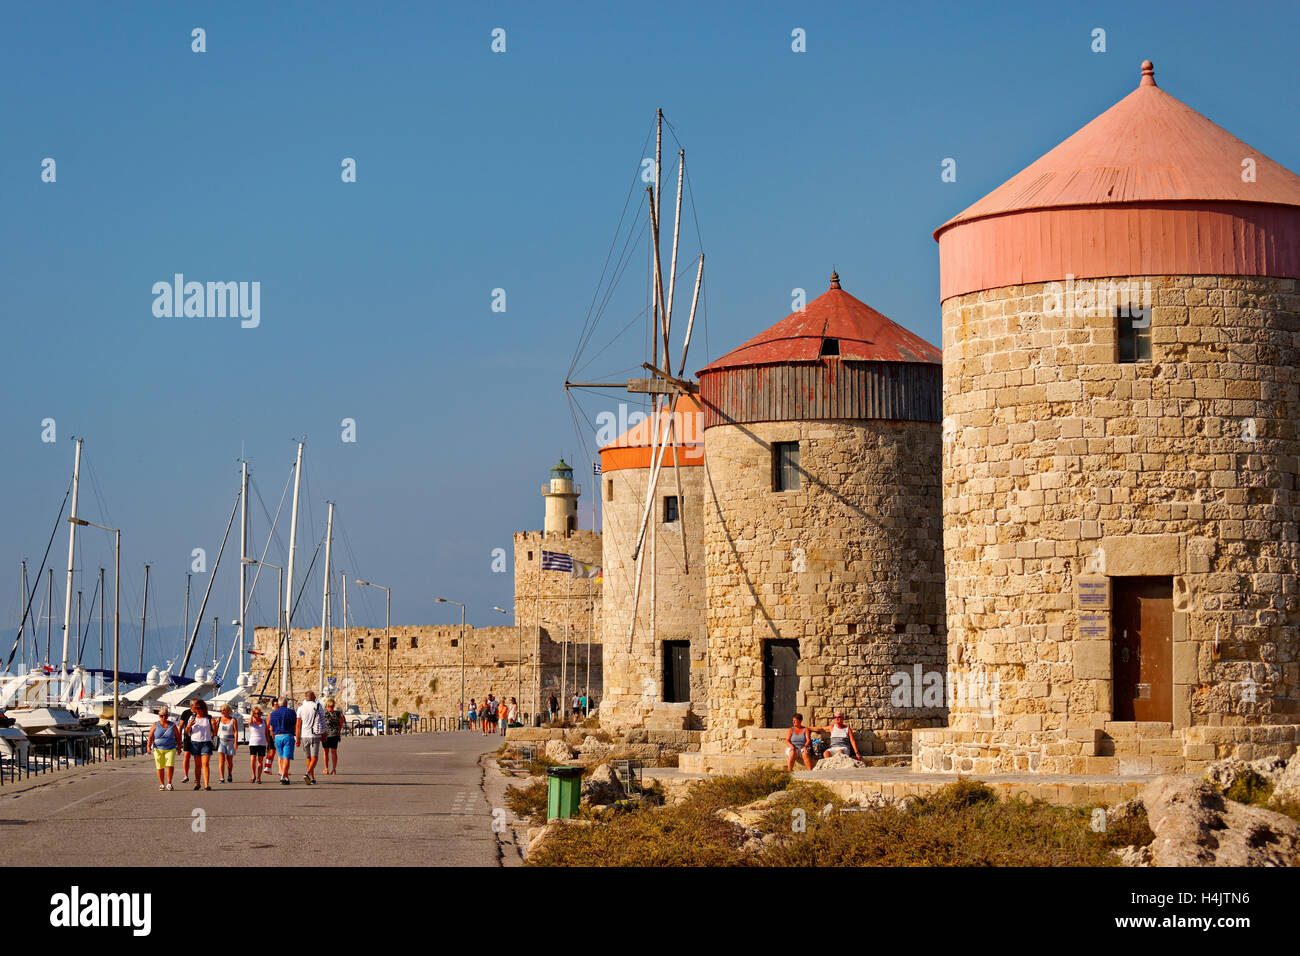 Old windmills at Rhodes city harbour, Island of Rhodes, Dodecanese island group, Greece. - Stock Image